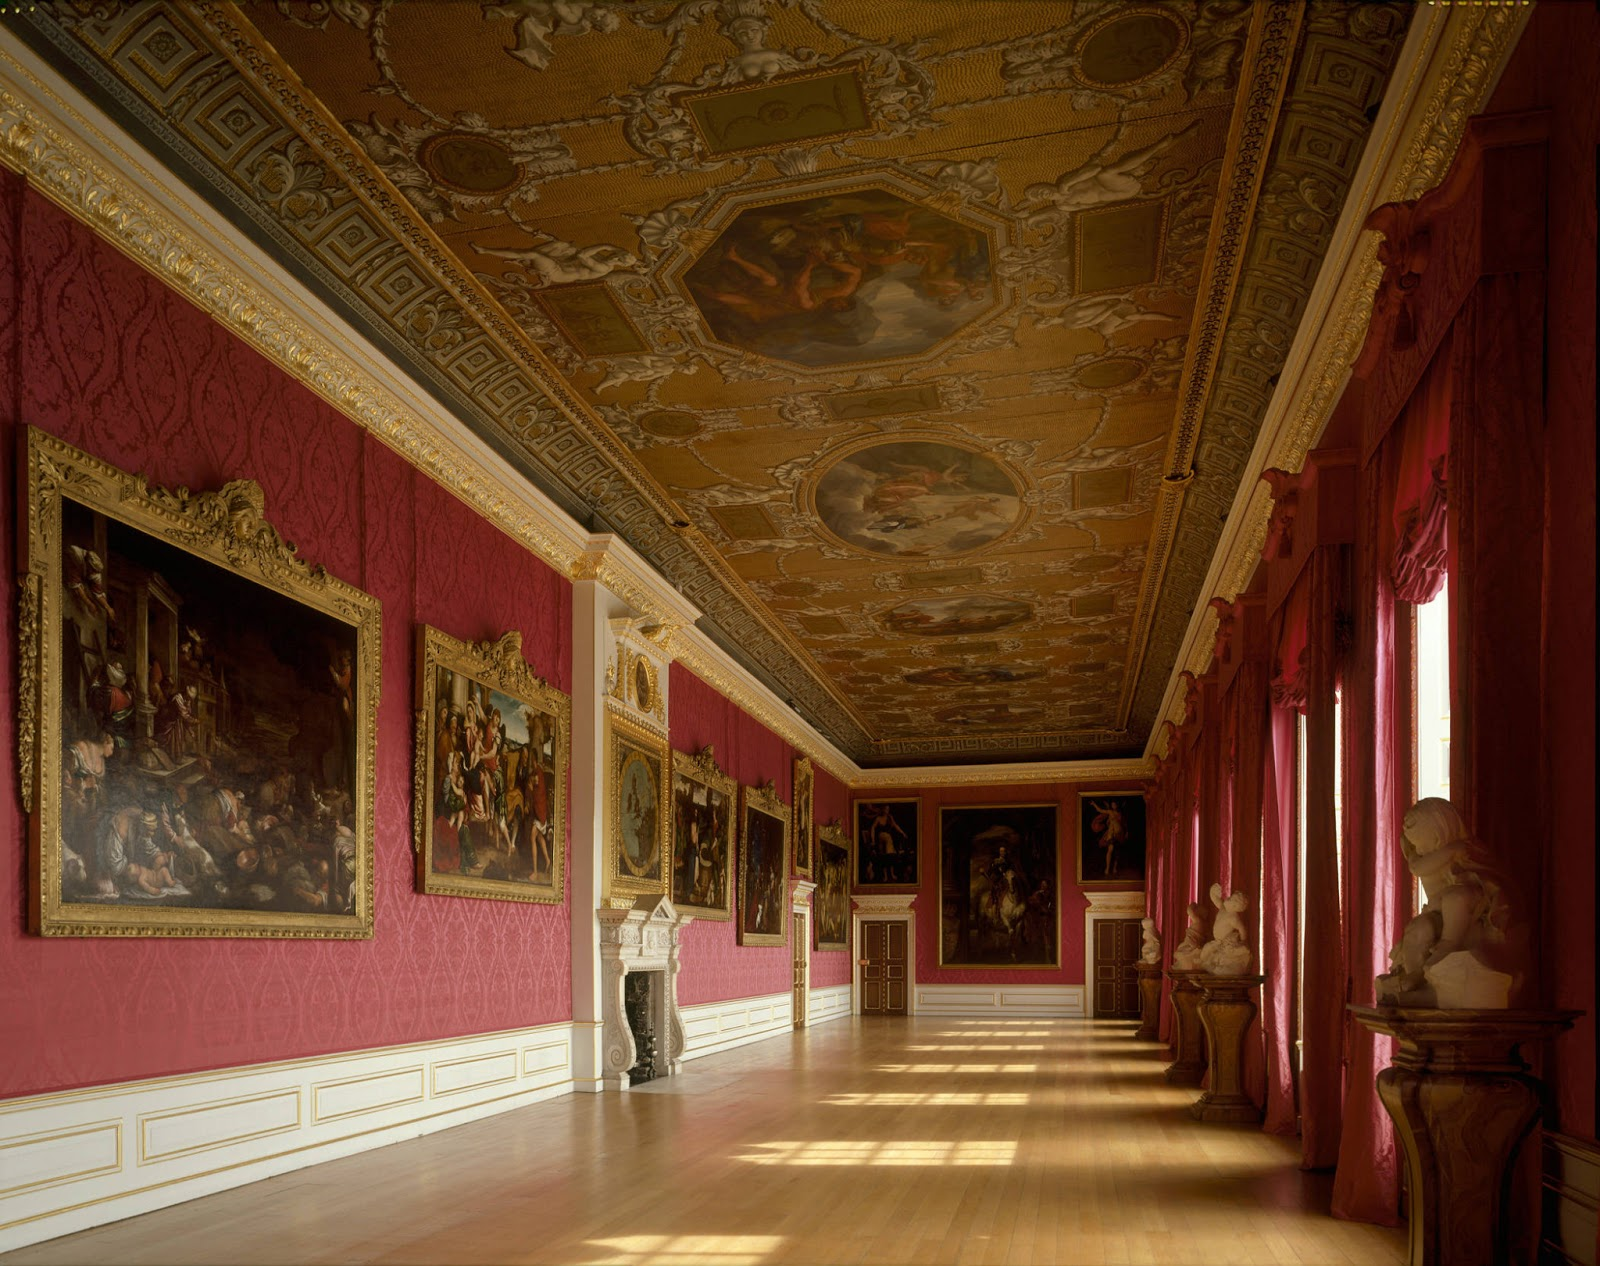 Kensington Palace interior view